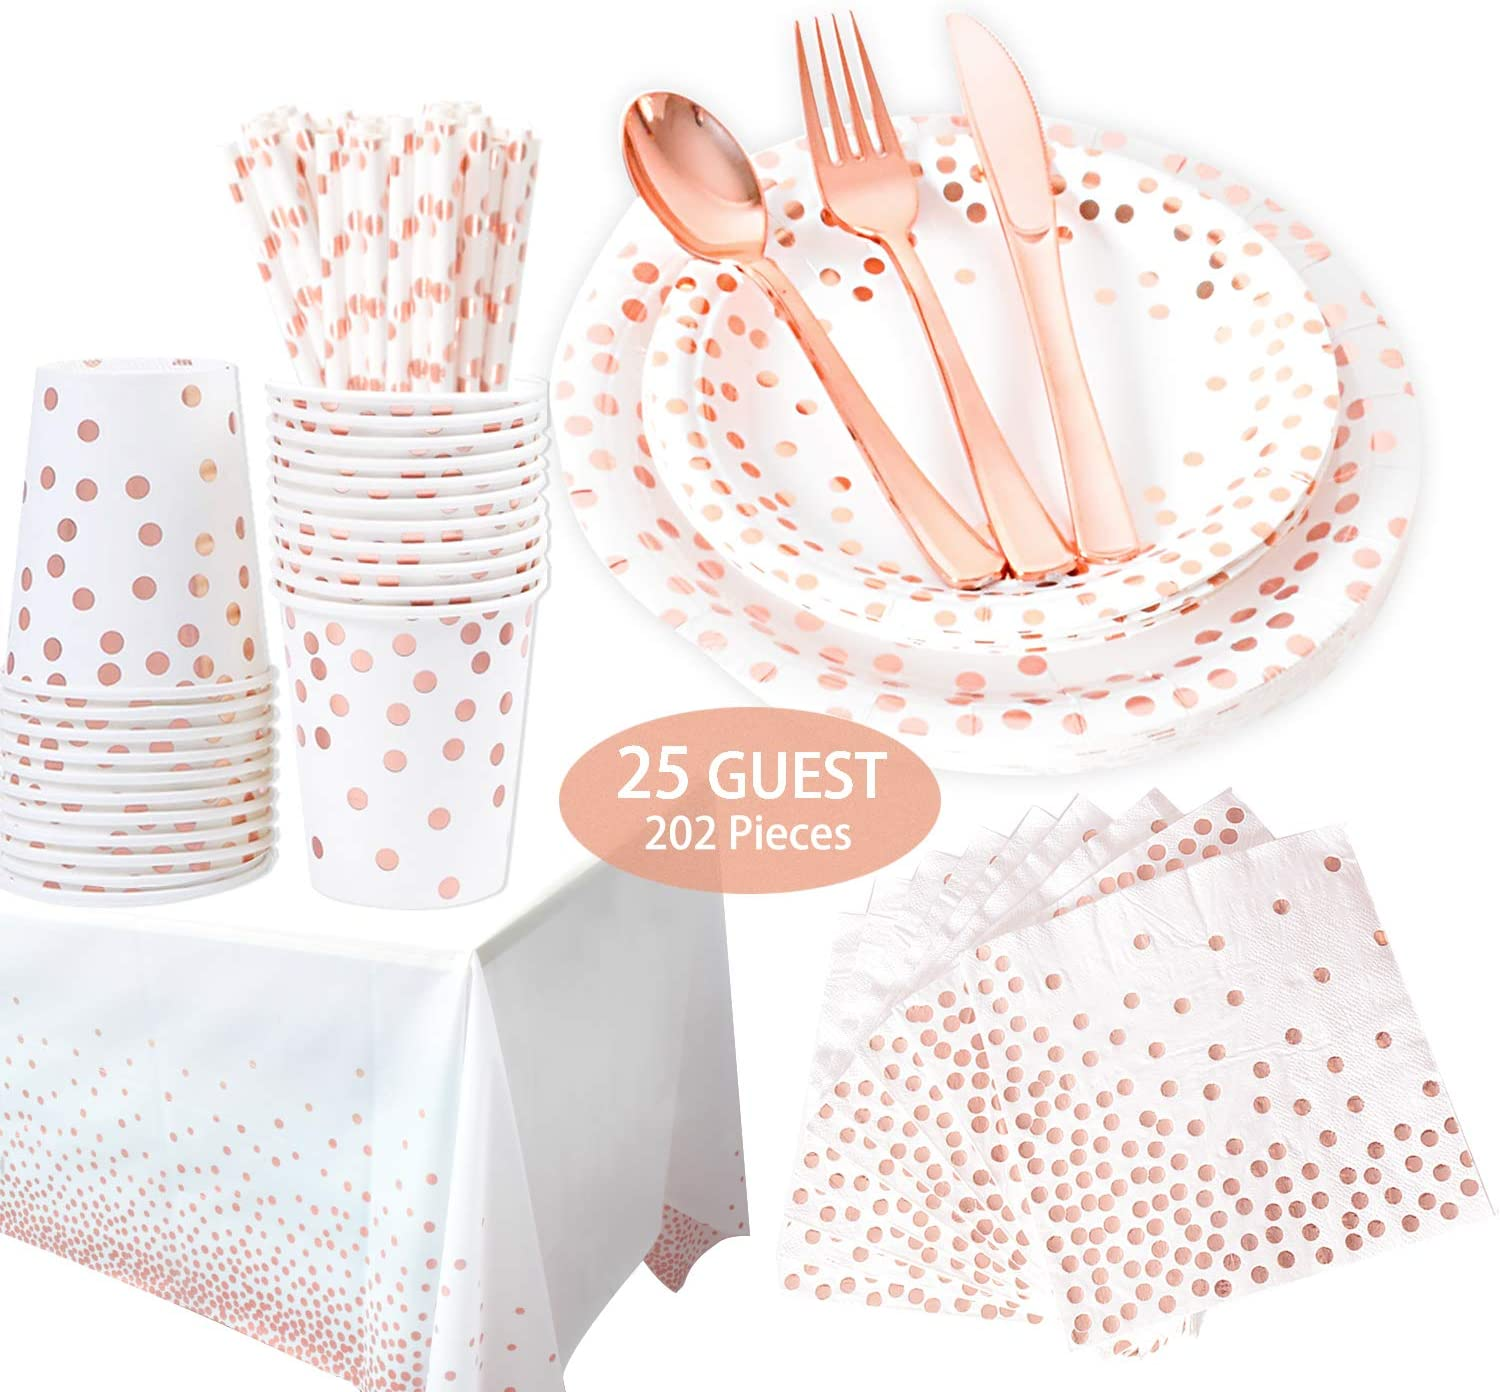 202 Piece Rose Gold Party Supplies Set | Disposable Dinnerware Set | Polka Dot | Services 25 with Rose Gold Cutlery Includes Plastic Knives, Spoons, Forks, Paper Plates, Napkins, Cups, straw,Tableclot